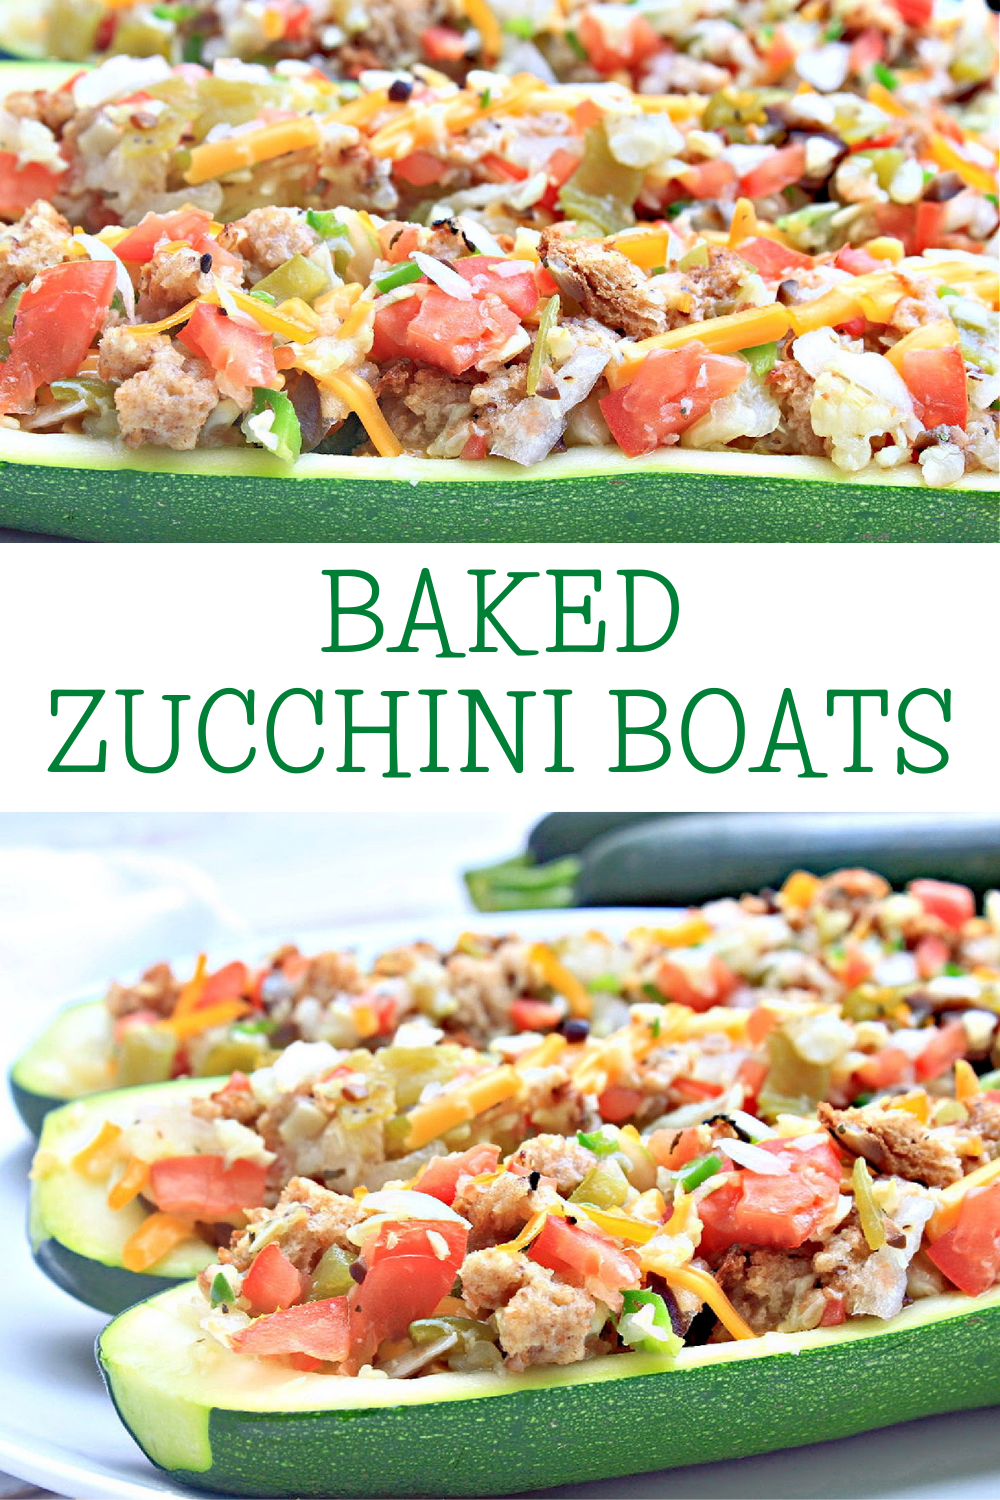 Baked Zucchini Boats ~ These garden-fresh zucchini stuffed with veggies serve 4 as a light main course or 8 as a side dish. via @thiswifecooks